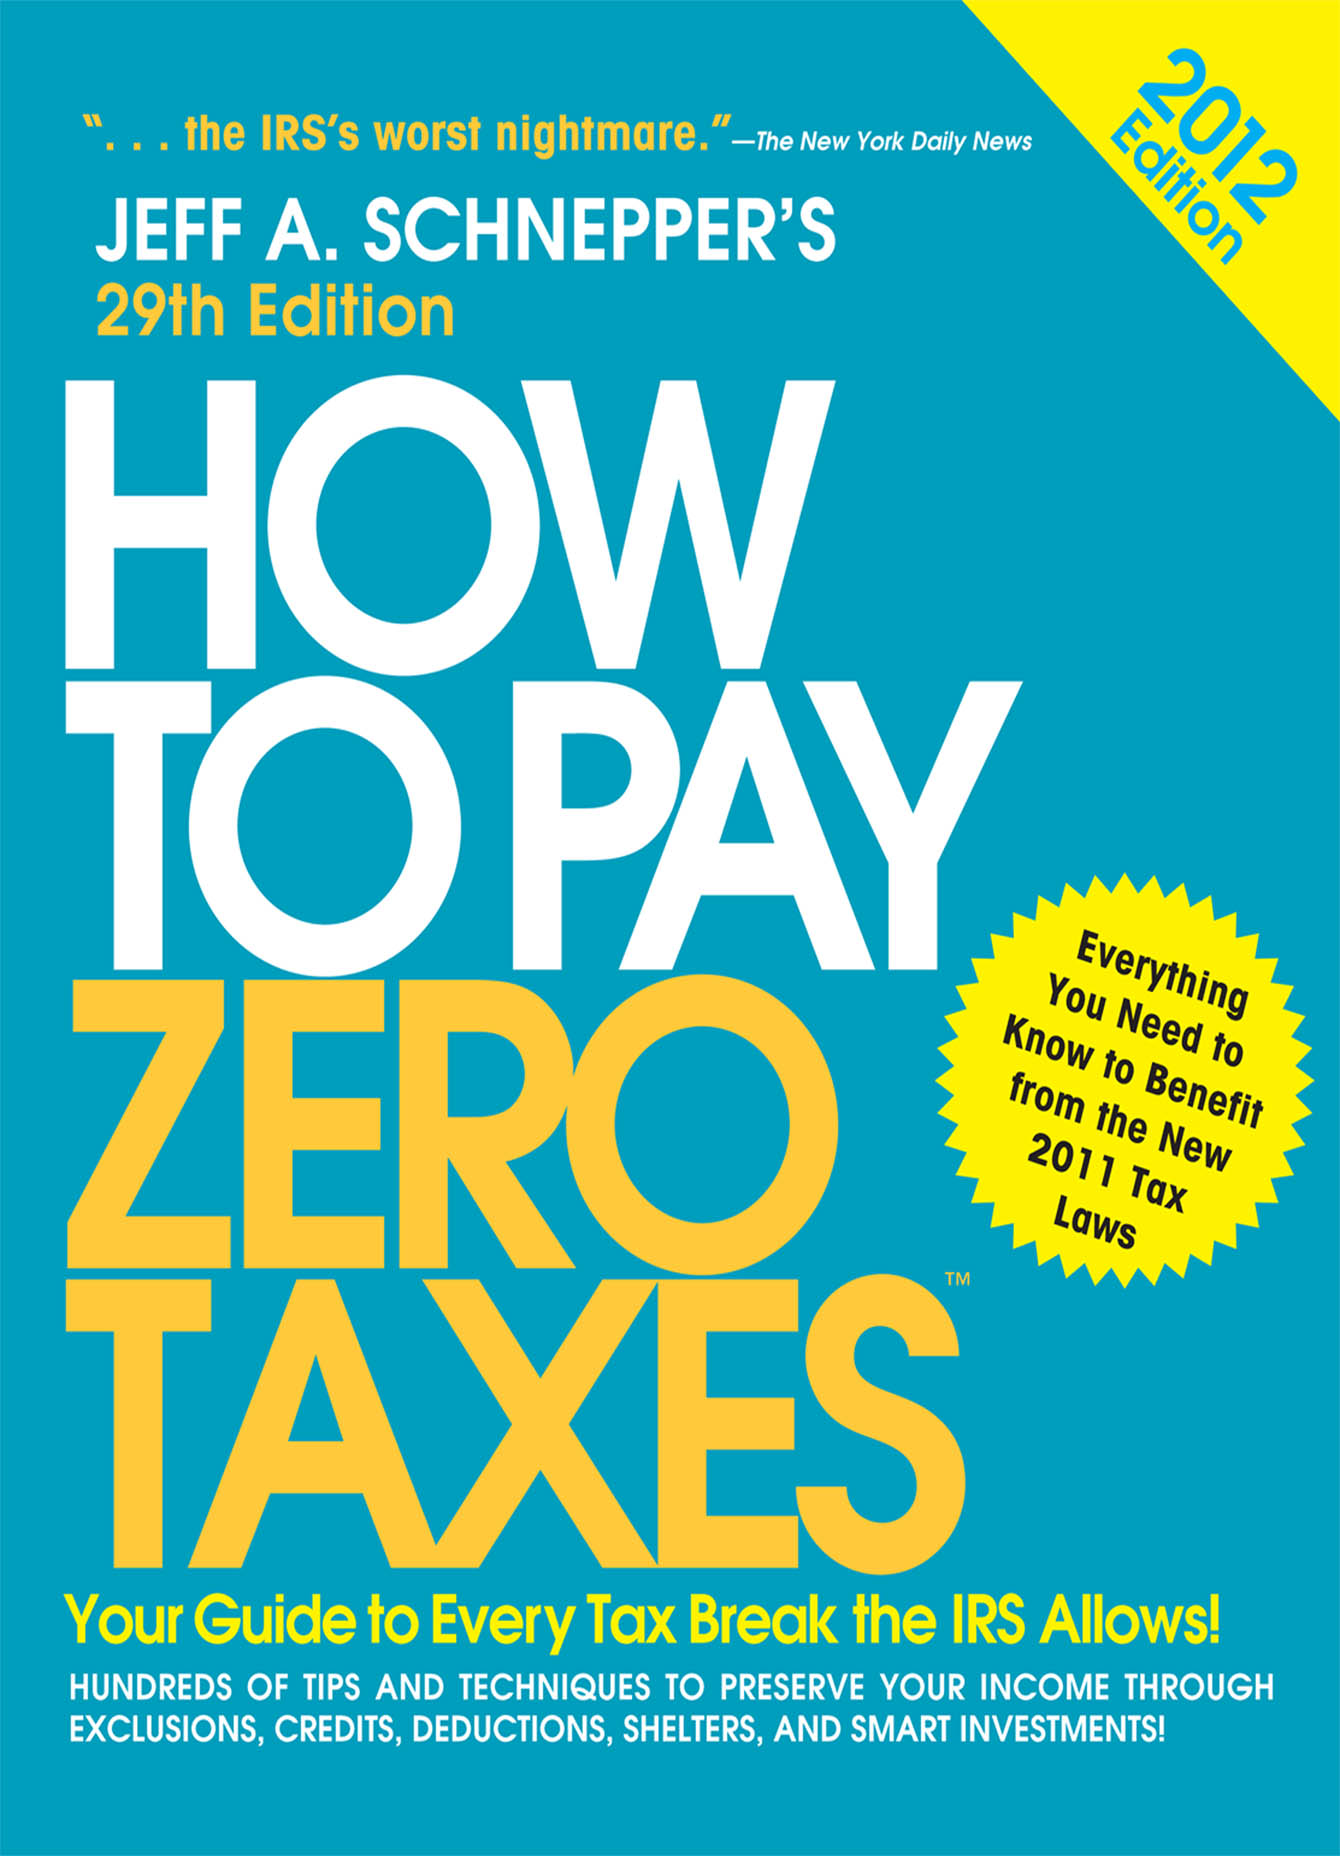 Download Ebook How to Pay Zero Taxes 2012:  Your Guide to Every Tax Break the IRS Allows! (29th ed.) by Jeff A. Schnepper Pdf